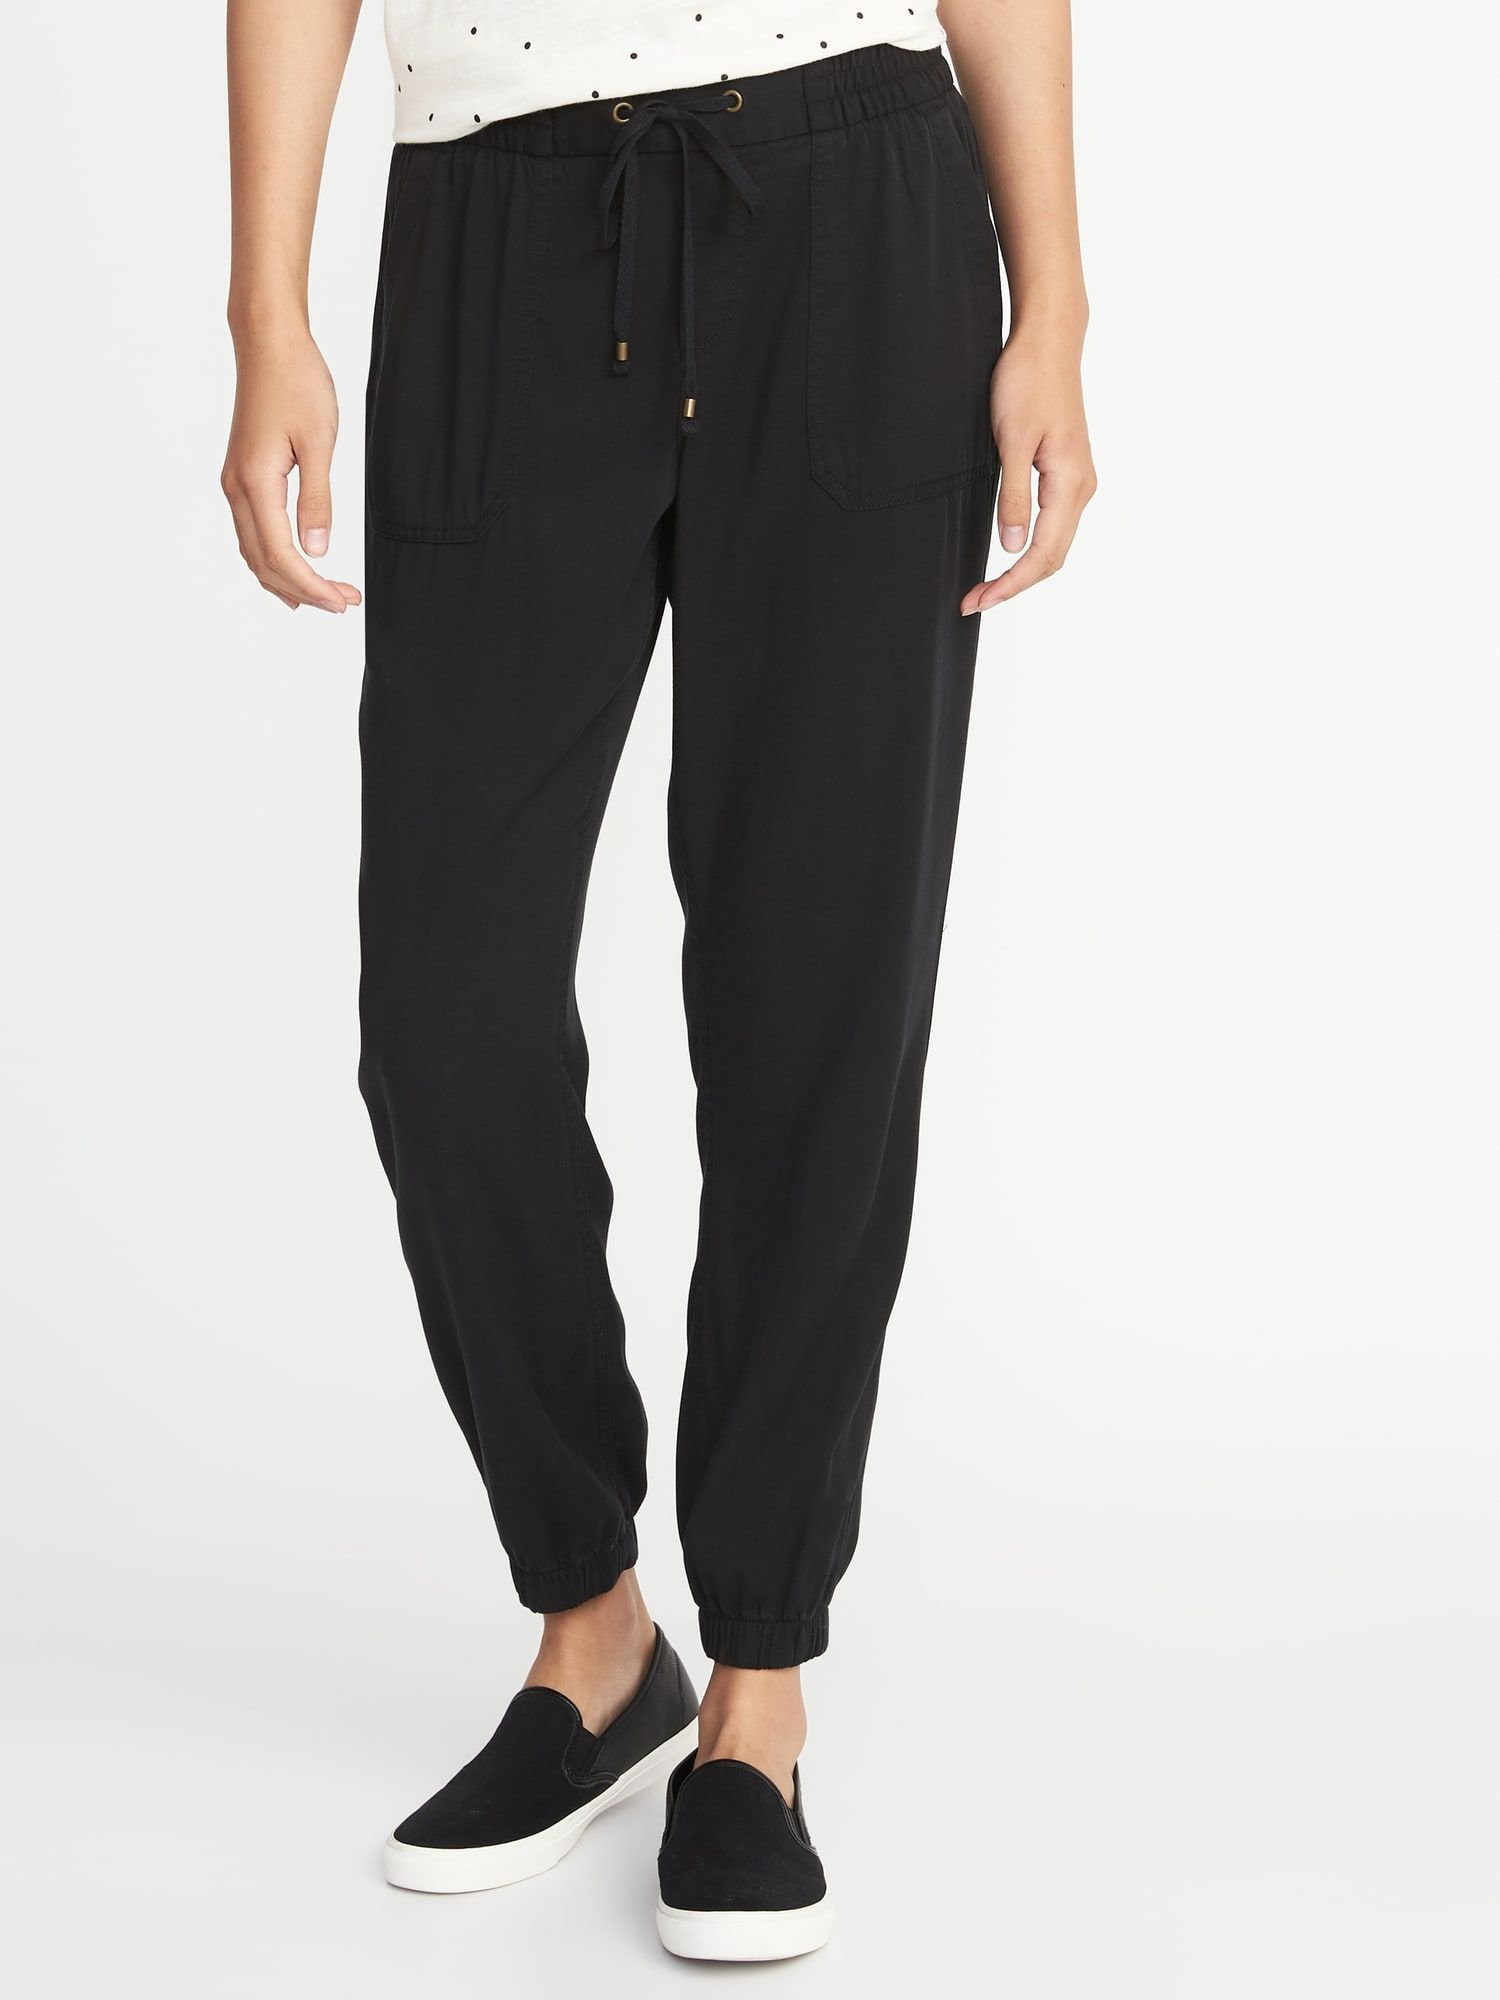 815c95aac7 Mid-Rise Soft Twill Utility Joggers for Women | Old Navy | Fashion ...